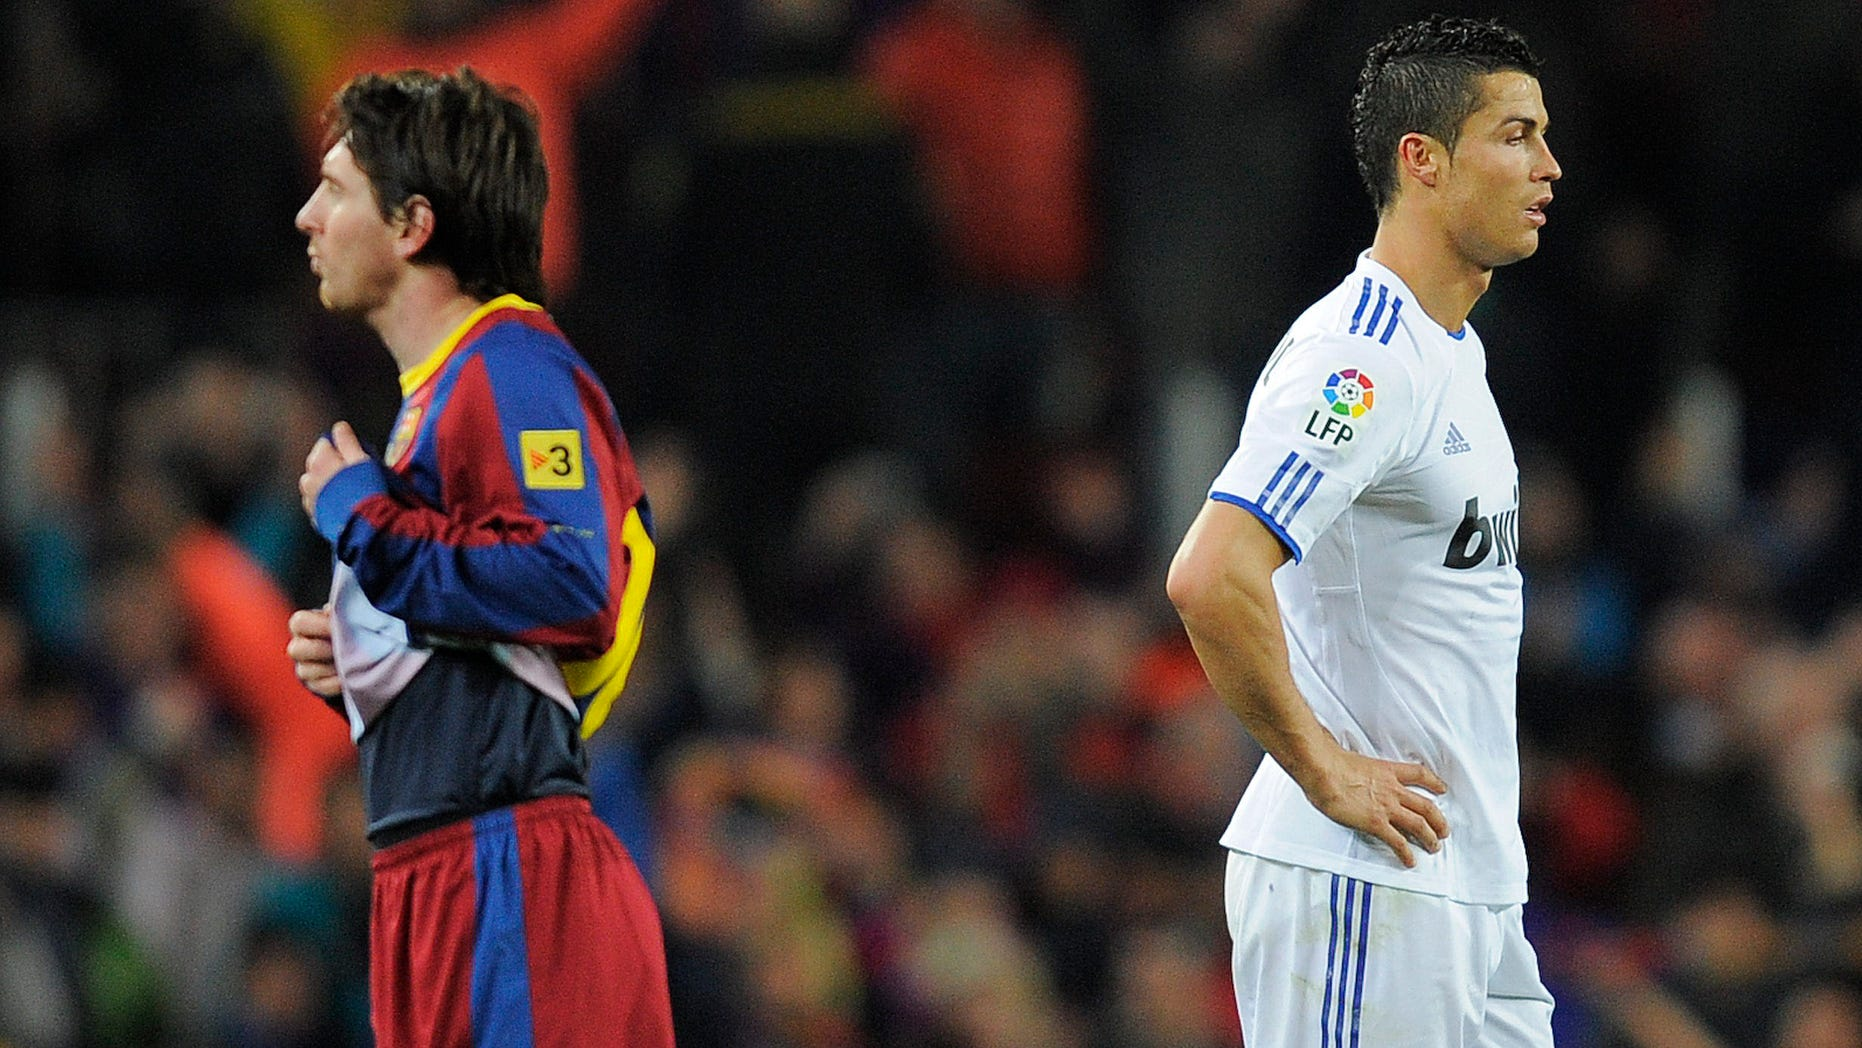 Cristiano Ronaldo of Real Madrid (R) and Lionel Messi of FC Barcelona look on during the La Liga match between Barcelona and Real Madrid at the Camp Nou Stadium on November 29, 2010 in Barcelona, Spain.